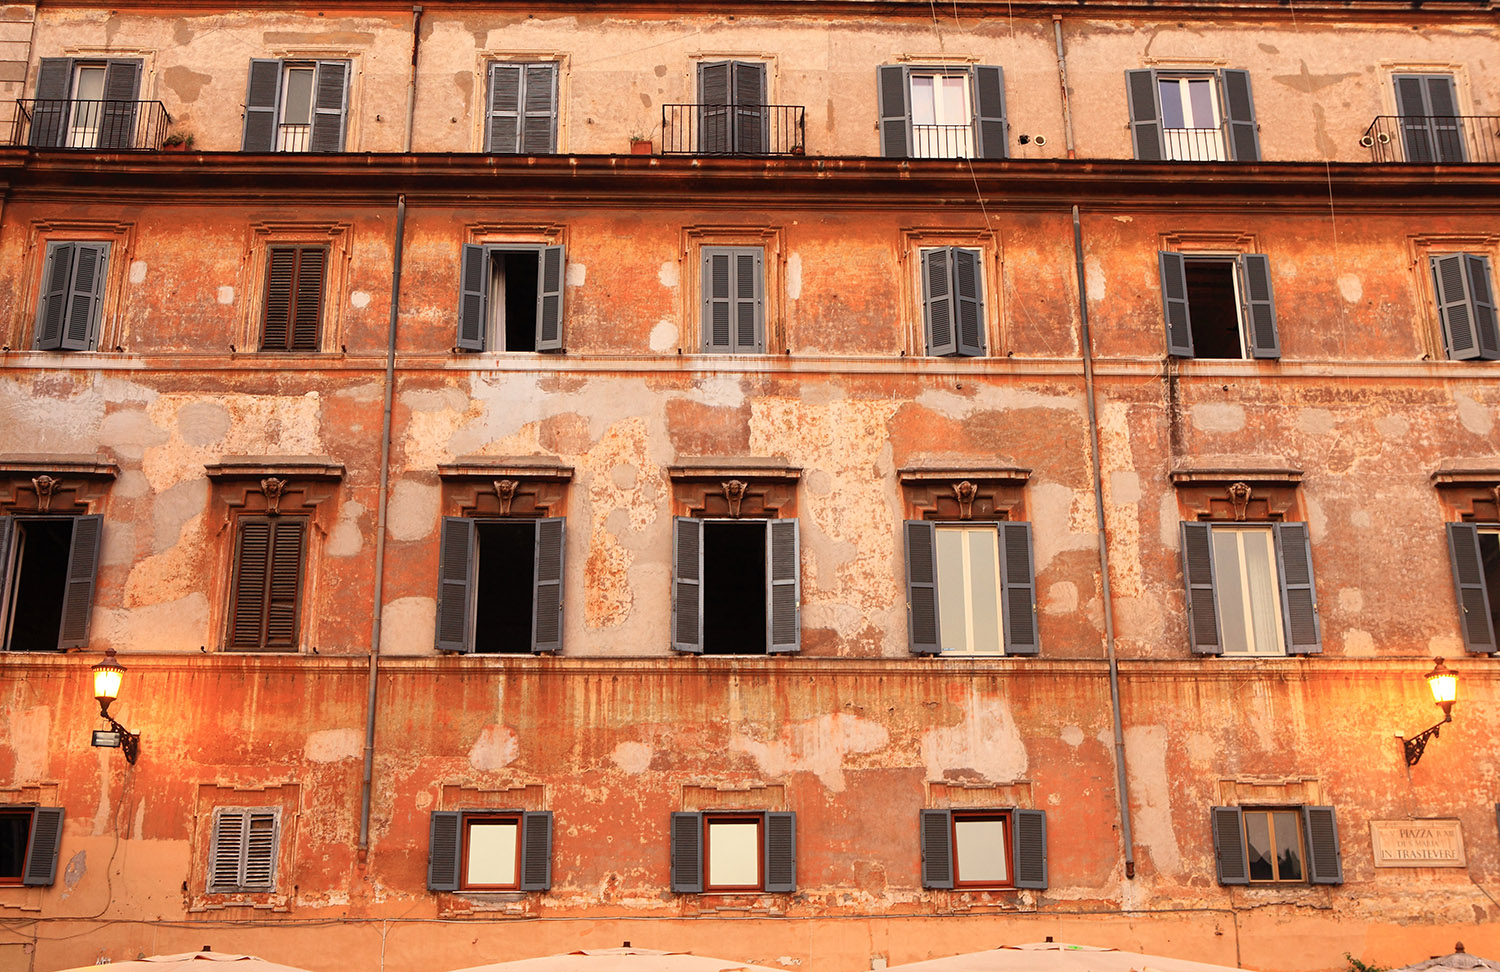 Italy / Rome / Windows